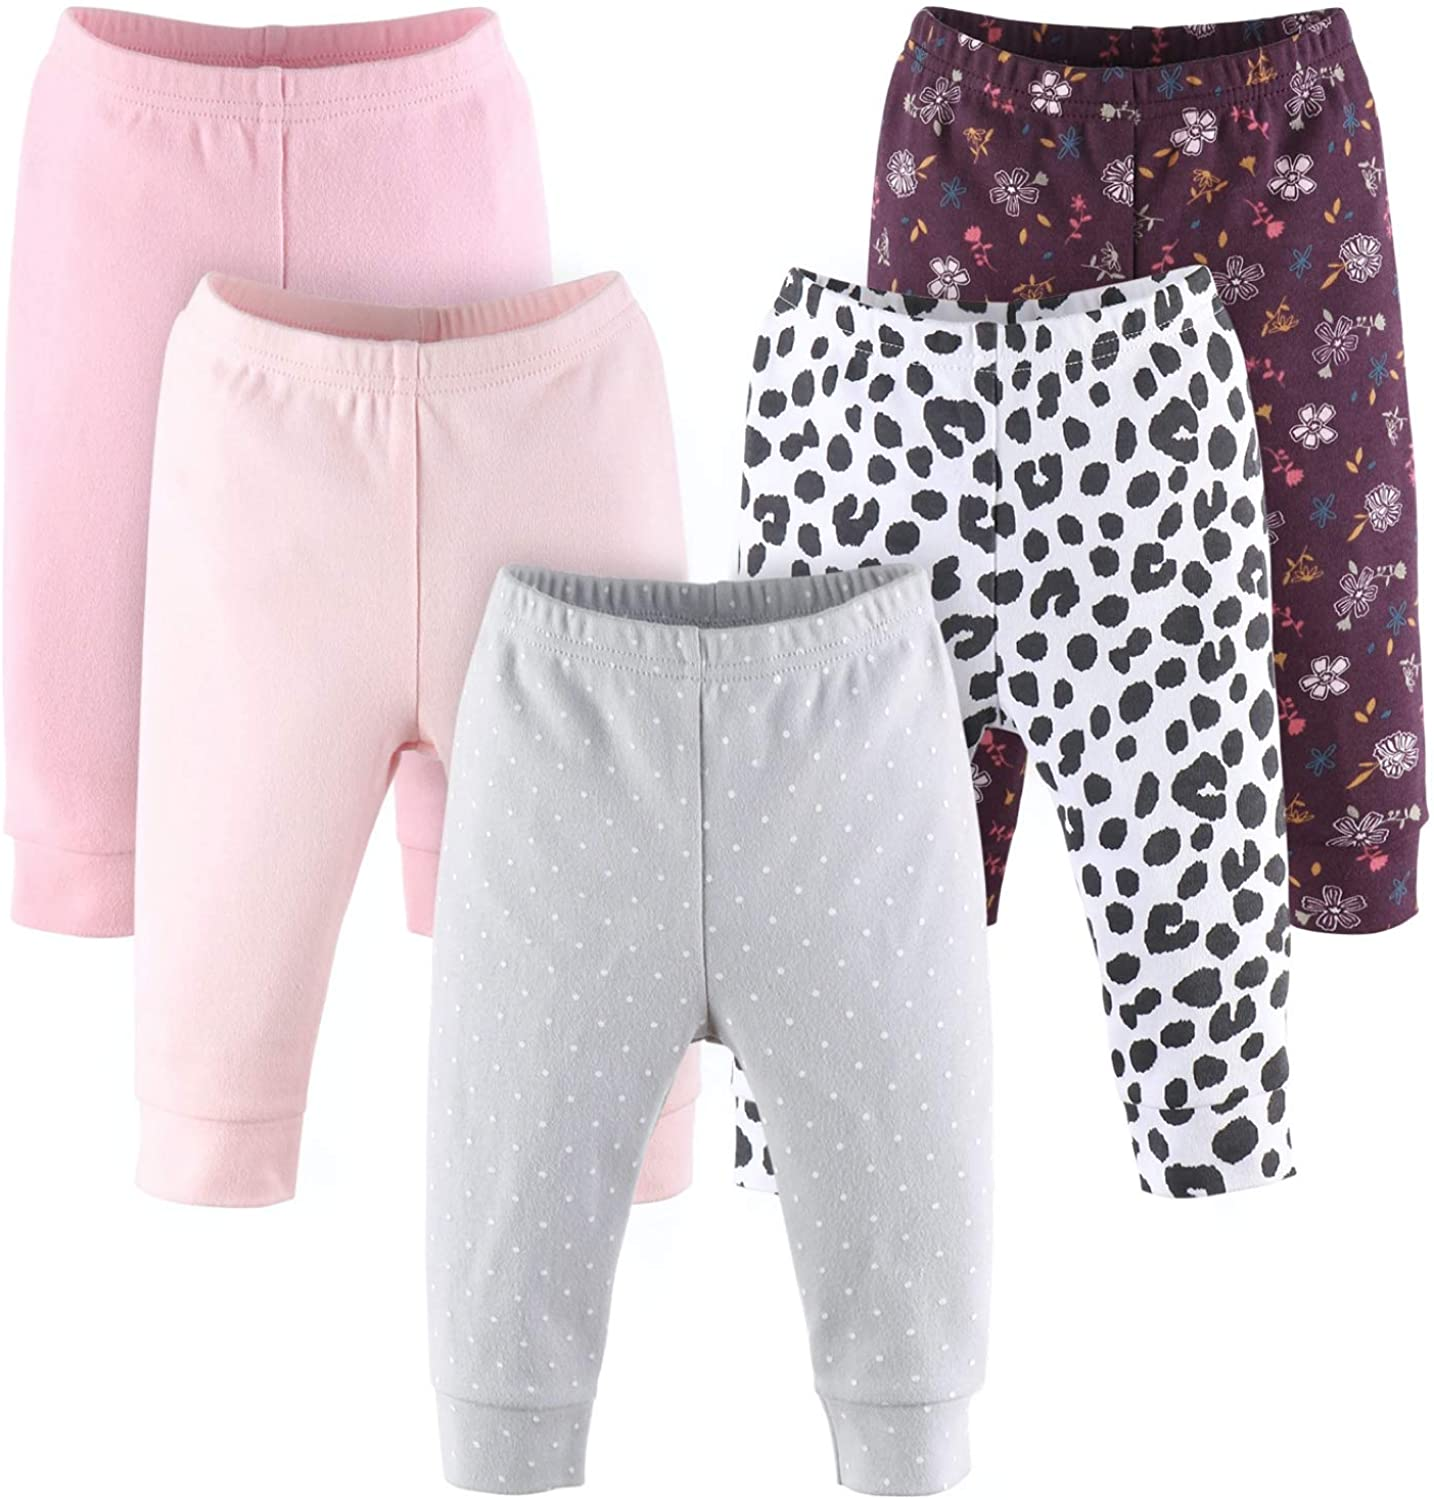 The Nashville-Davidson Mall Max 42% OFF Peanutshell Floral and Animal Baby Print Pants Set for